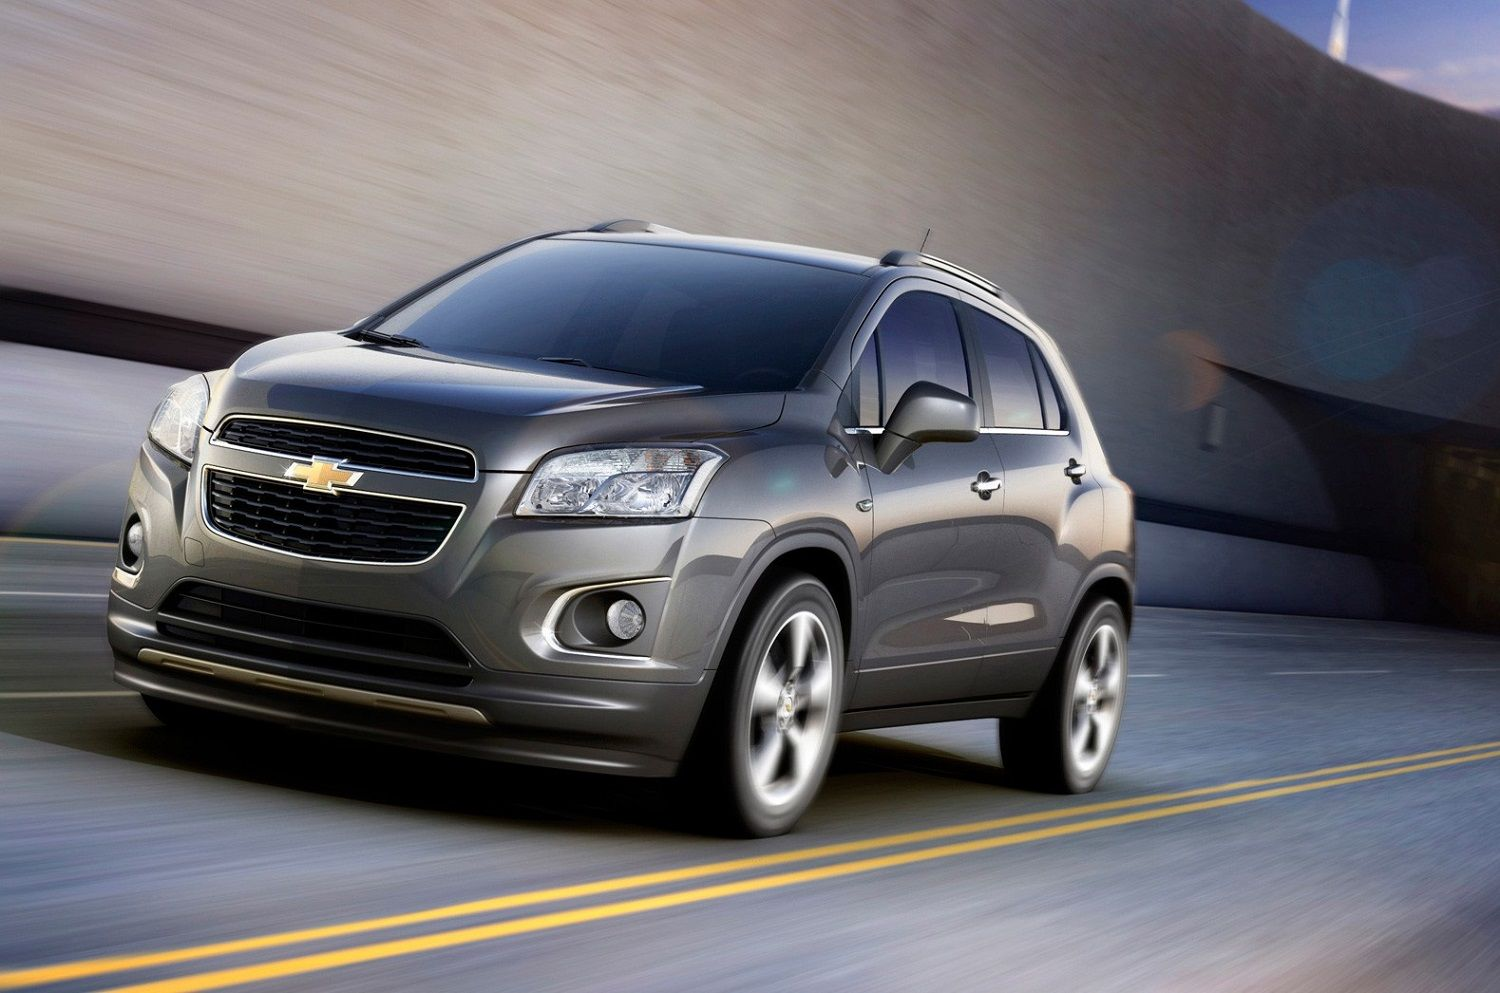 Chevy equinox crossover suv for sale today you can get great prices on chevrolet equinox mid